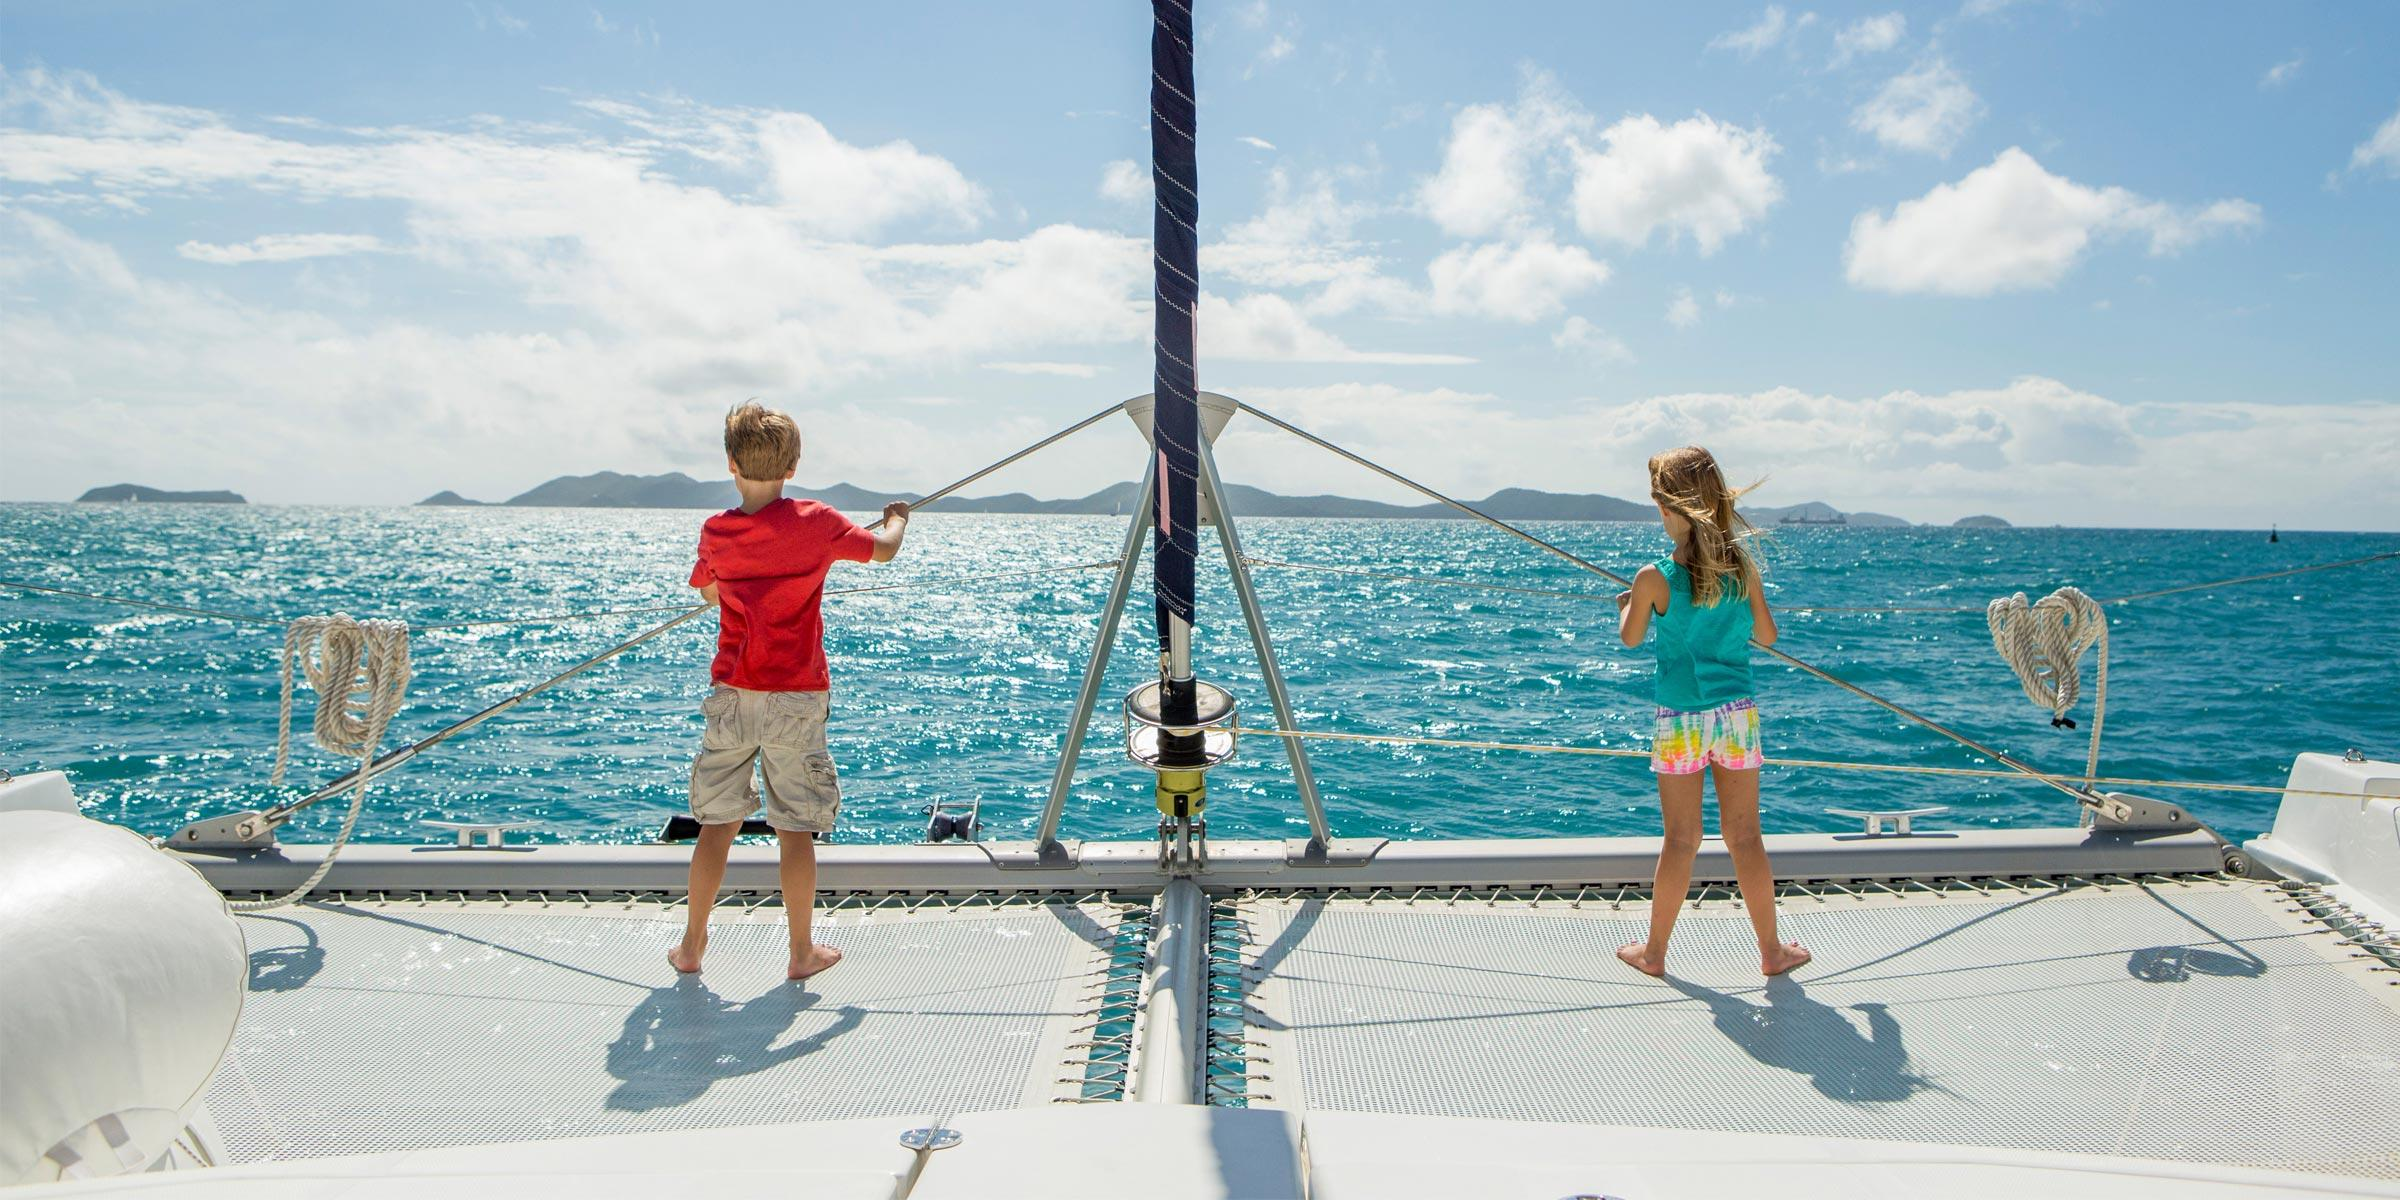 Children on catamaran trampoline in the BVI